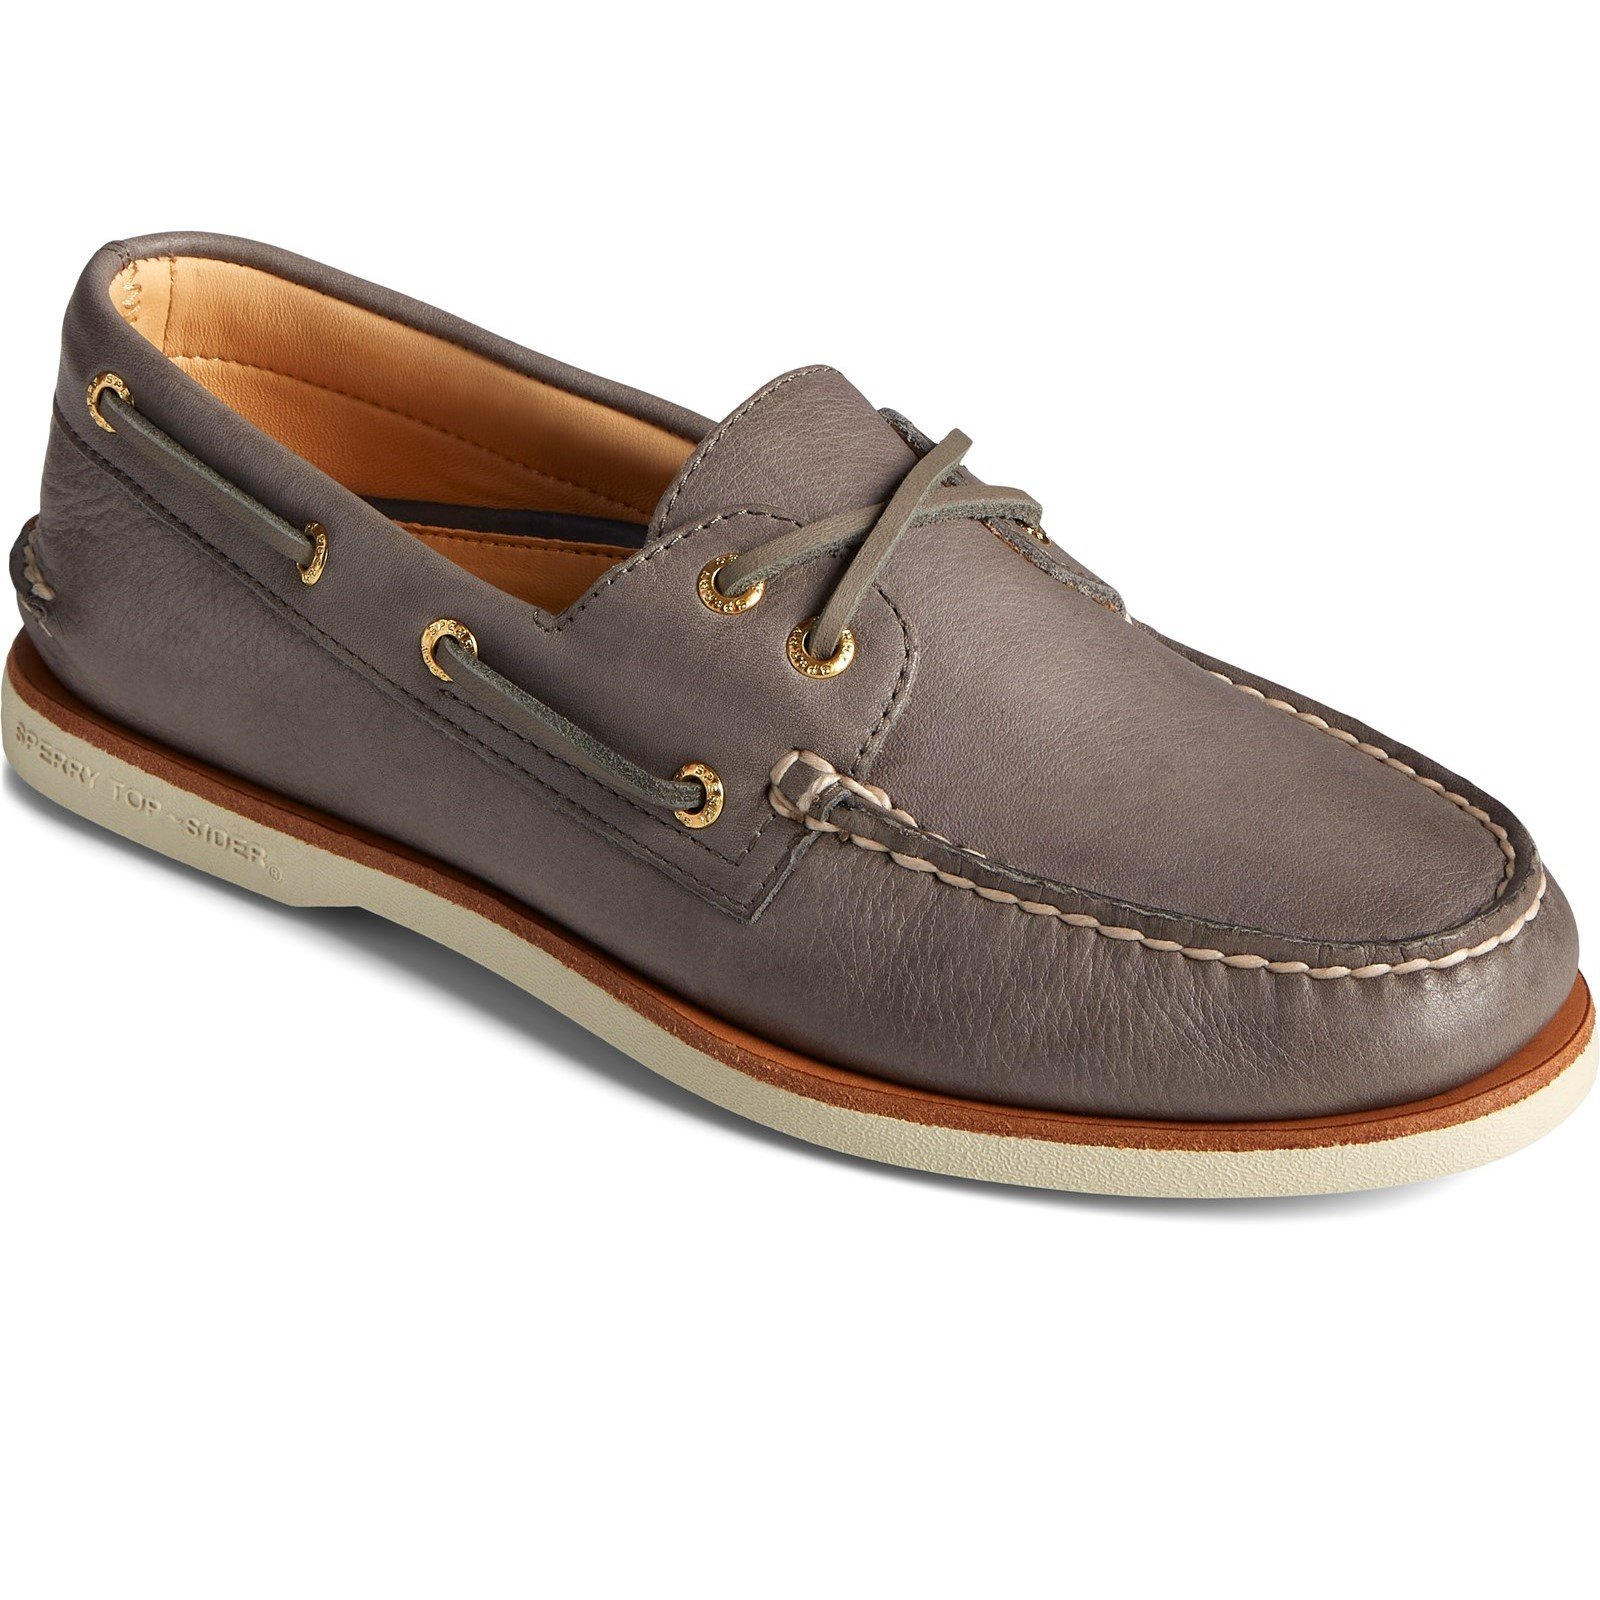 Sperry Men's A/O 2-Eye Boat Shoe Various Colours 32926 - Charcoal 7